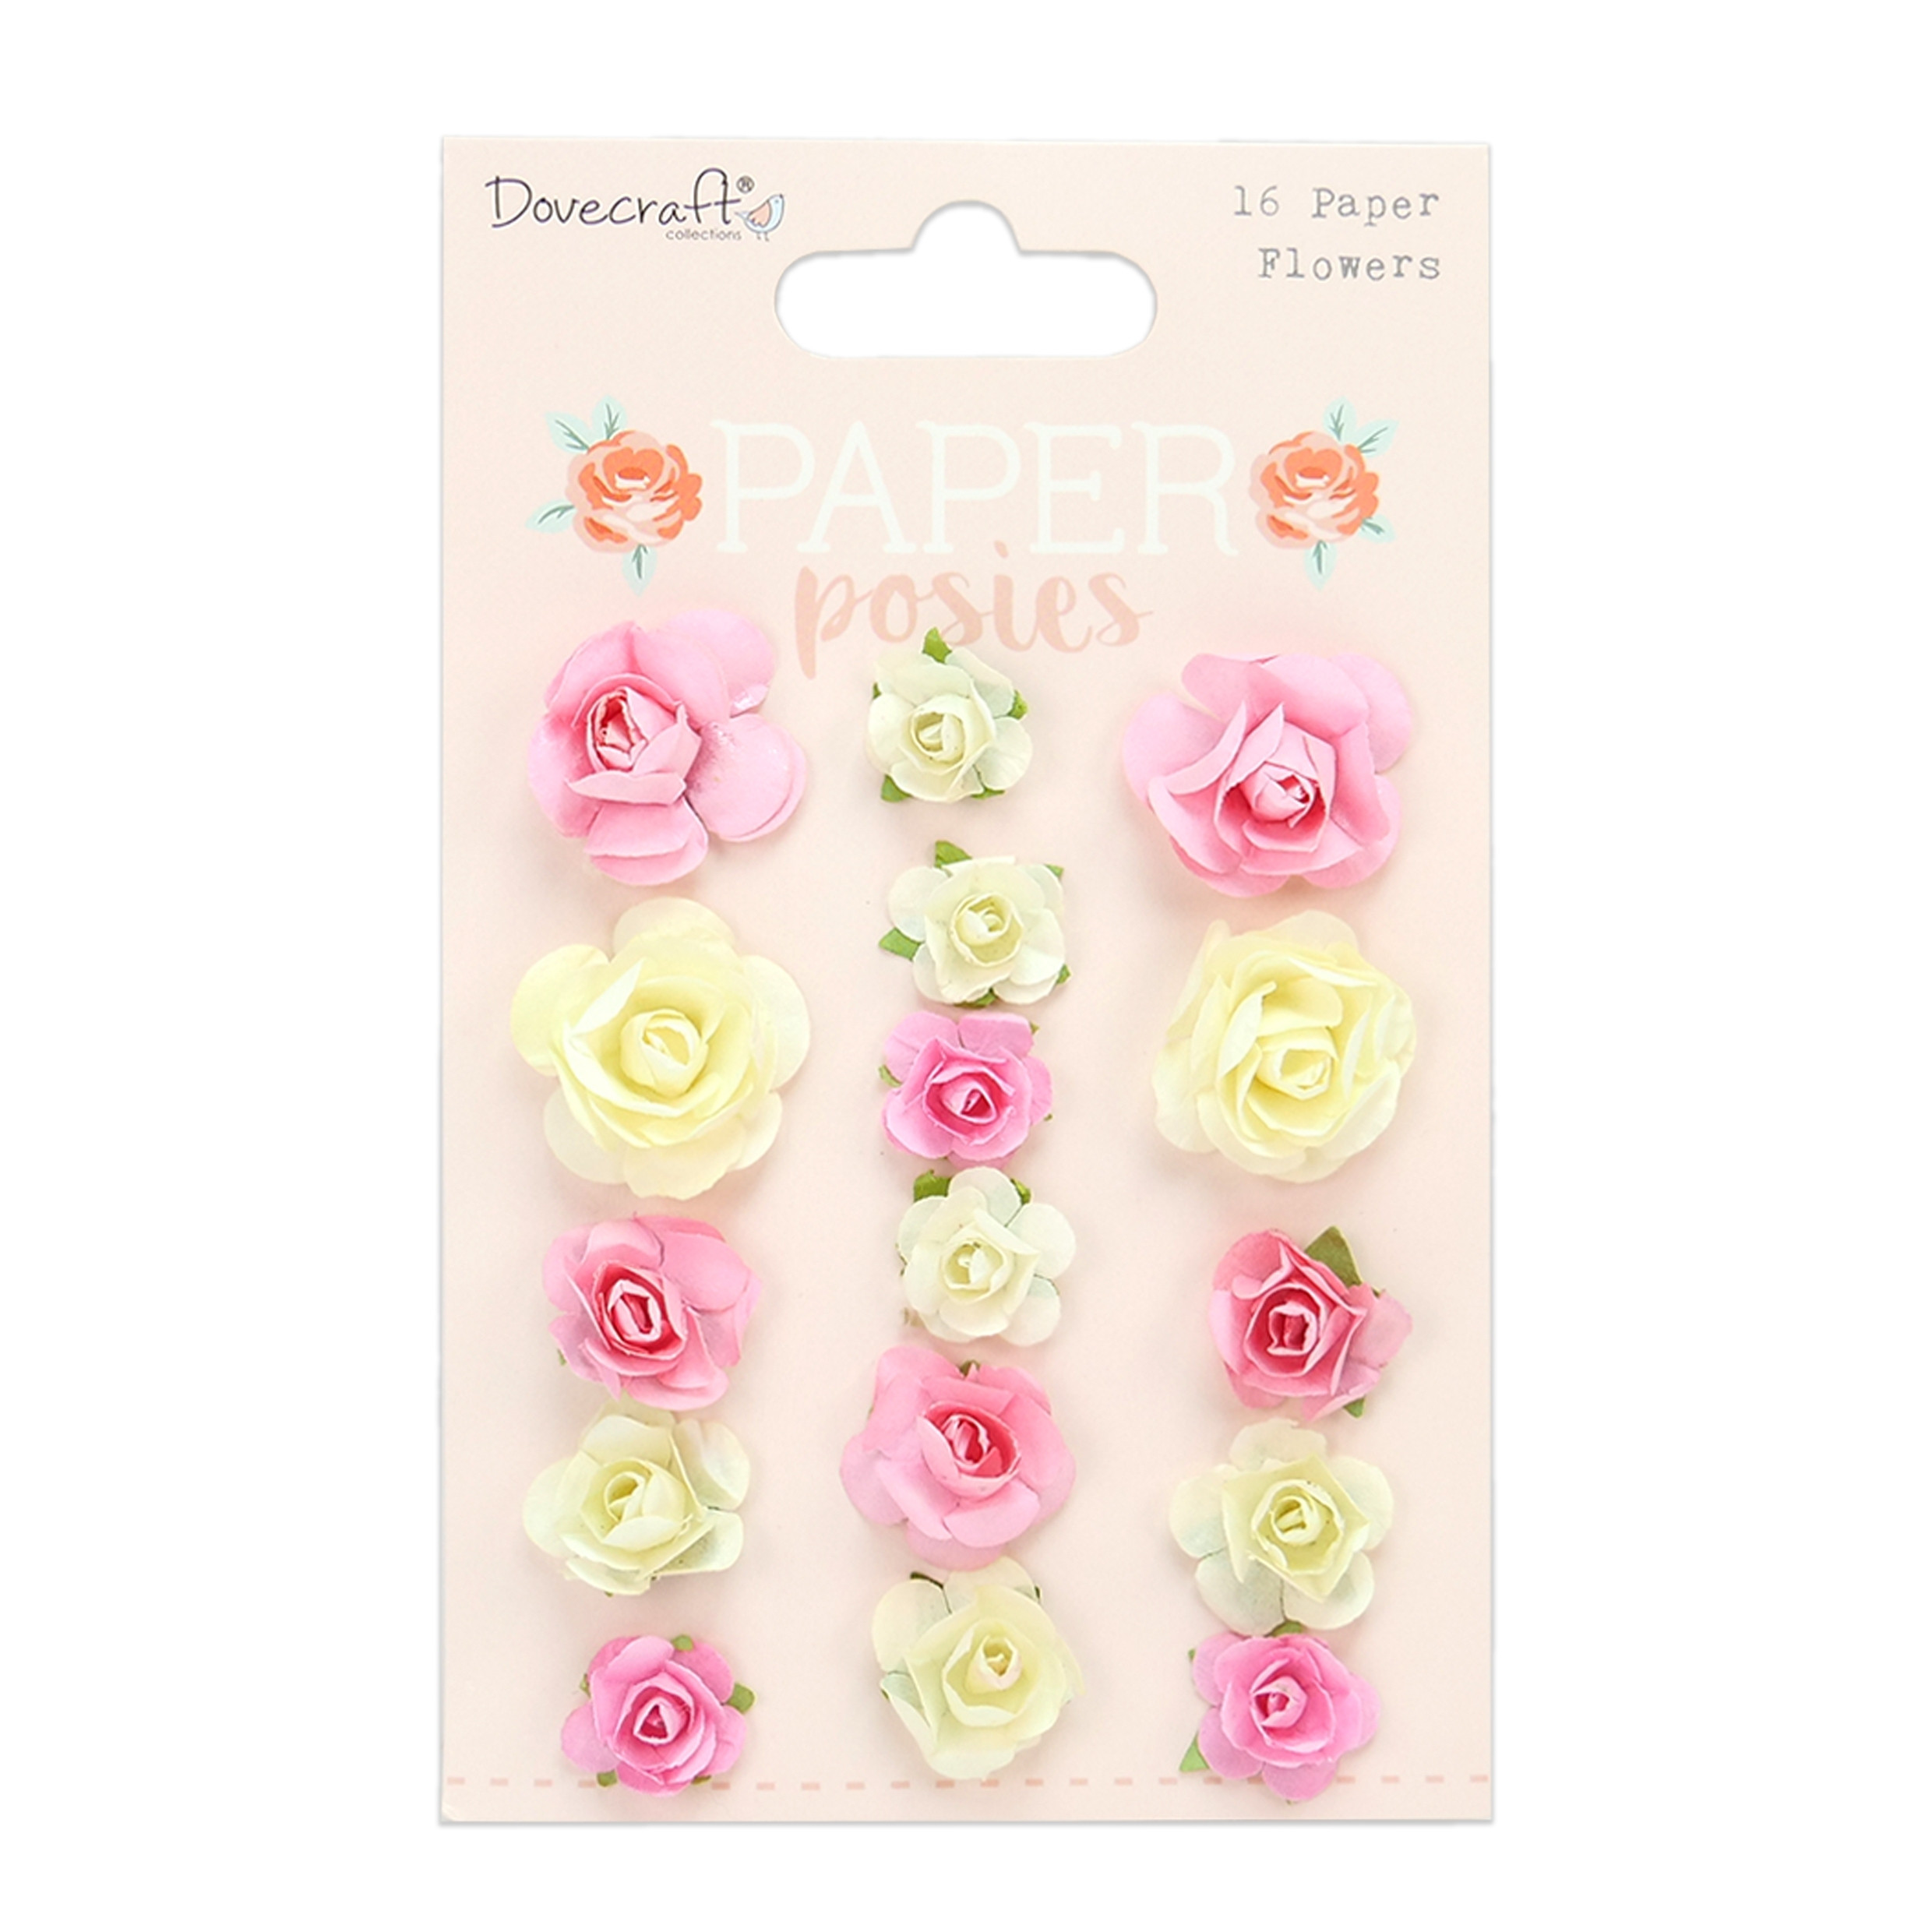 Dovecraft Paper Posies Paper Flowers